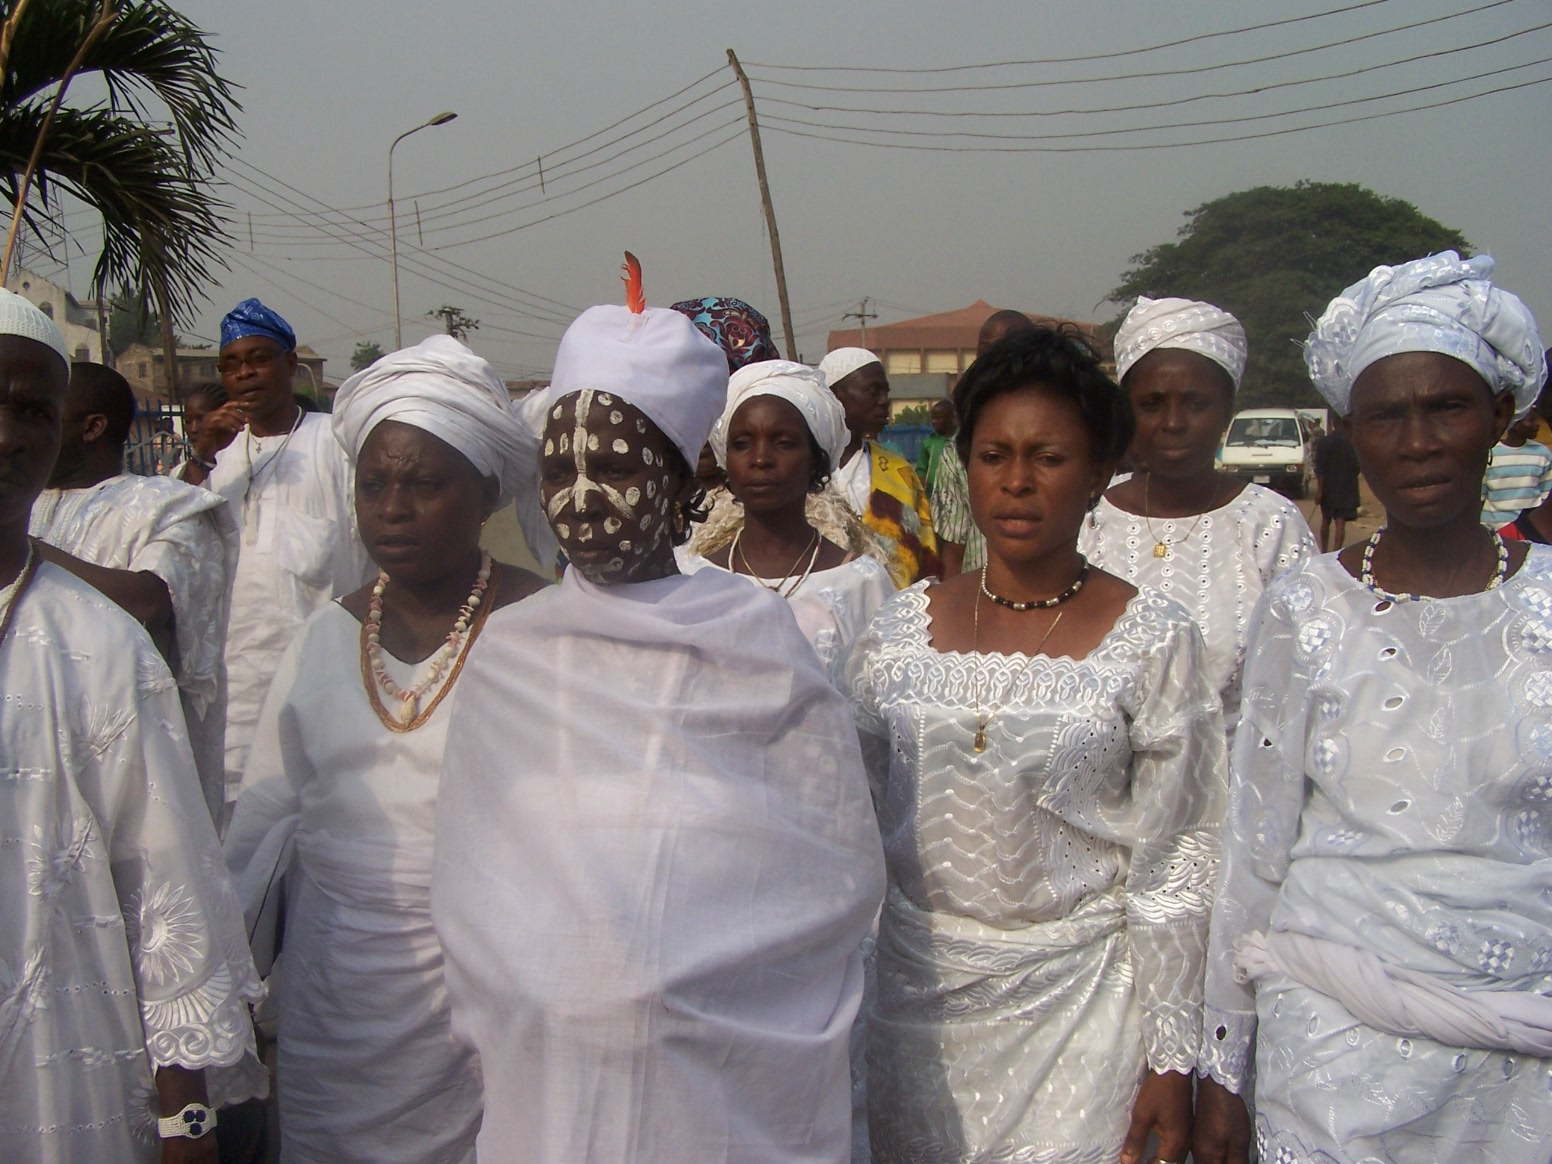 102 2586 Ife People: The Ancient Artistic, Highly Spiritual And The First Yoruba People